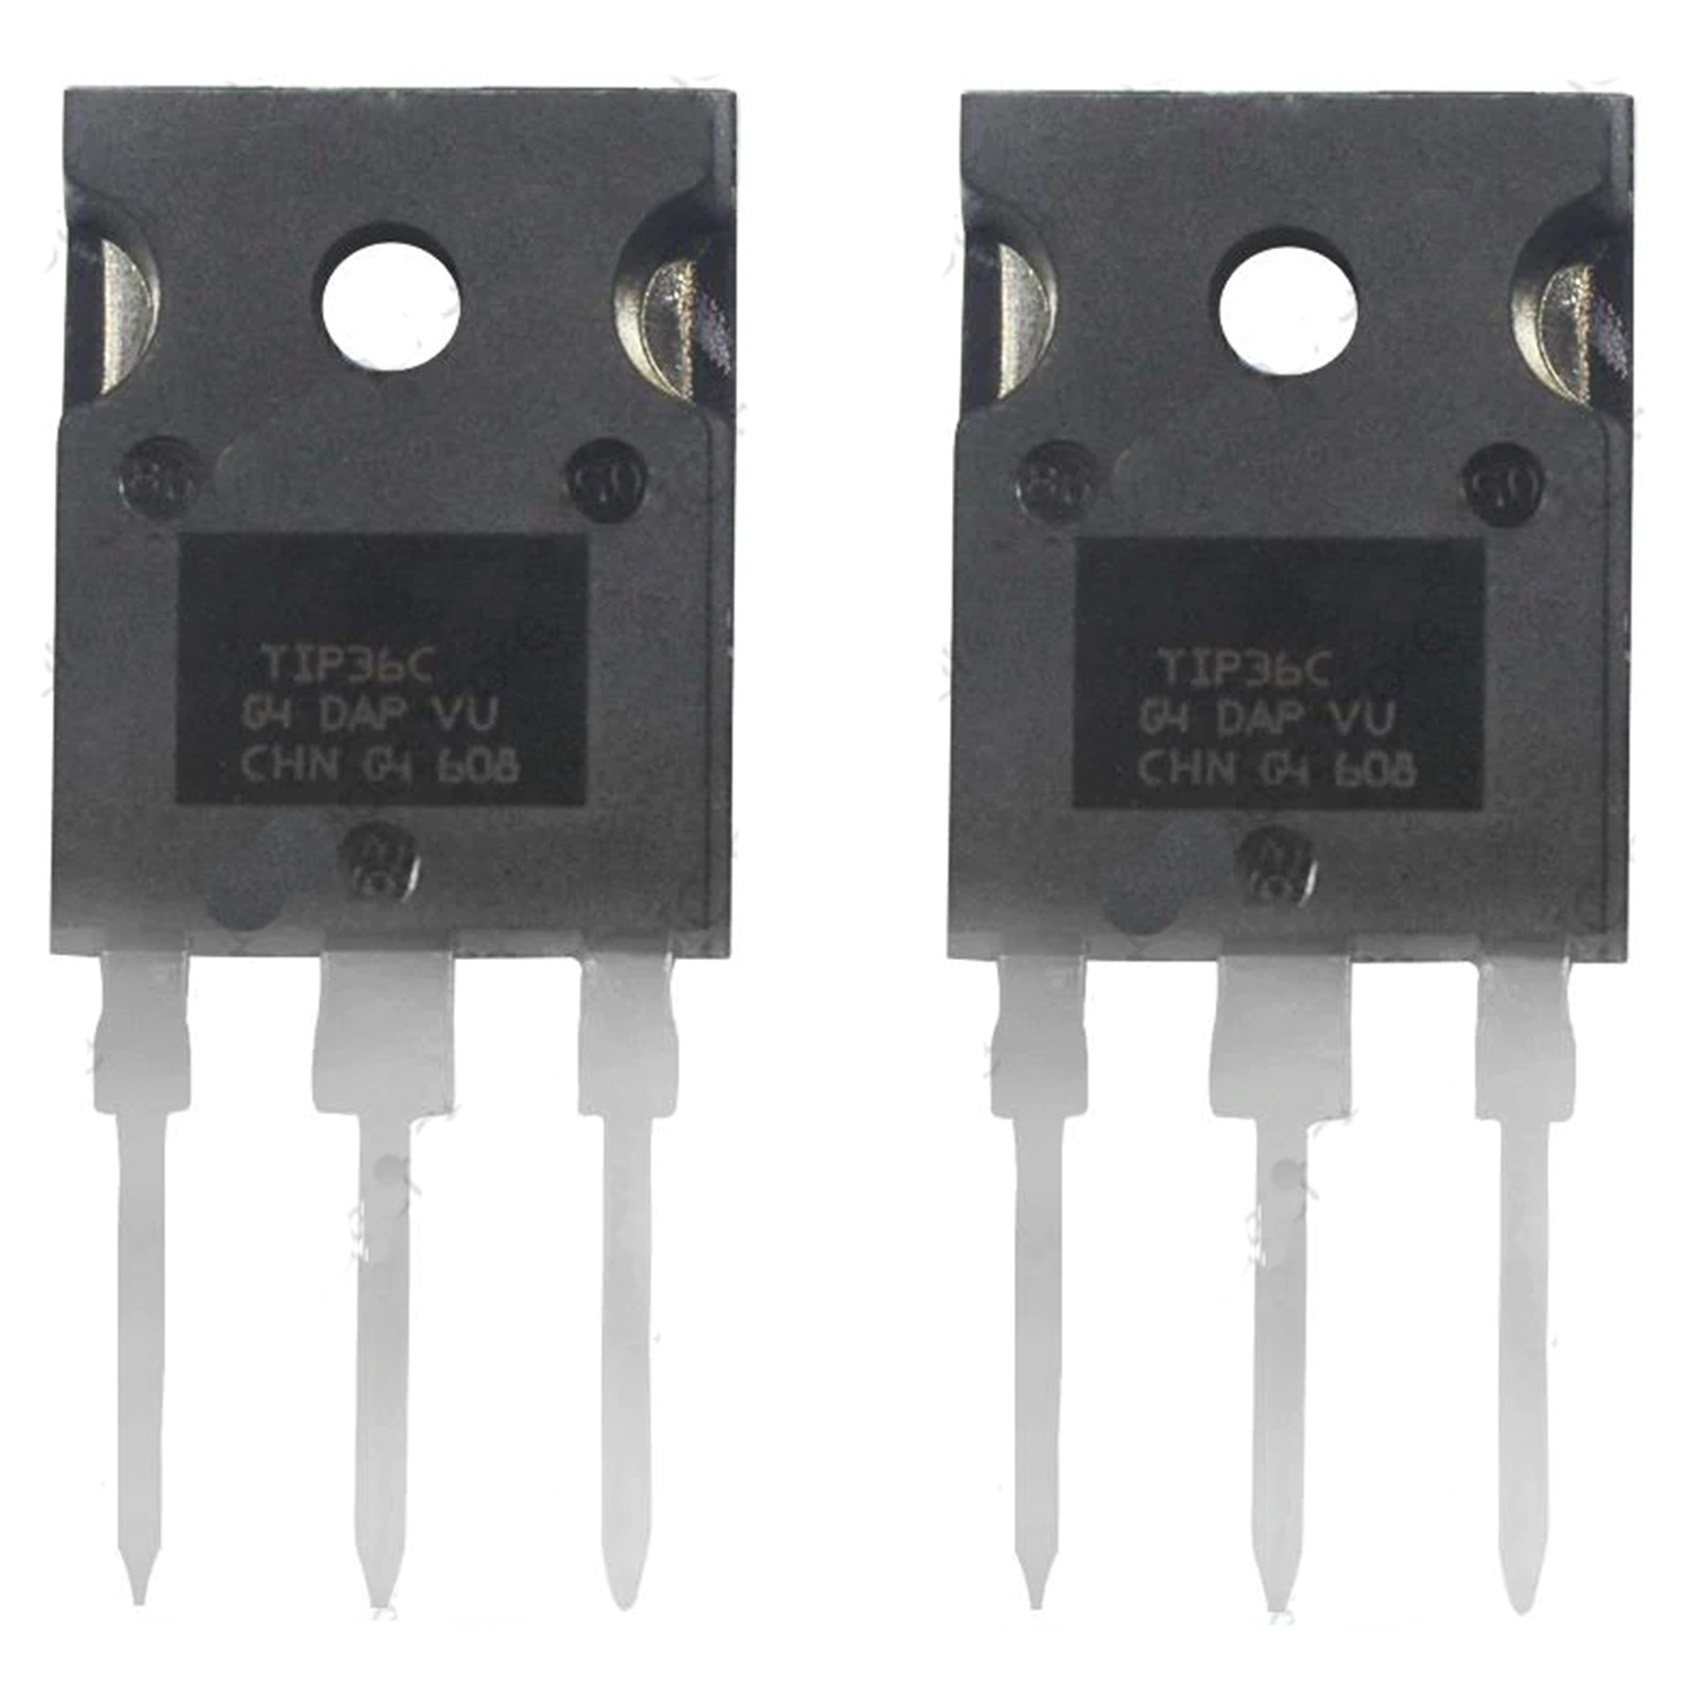 2 X Tip36c Pnp Power Transistor To 247 All Top Notch